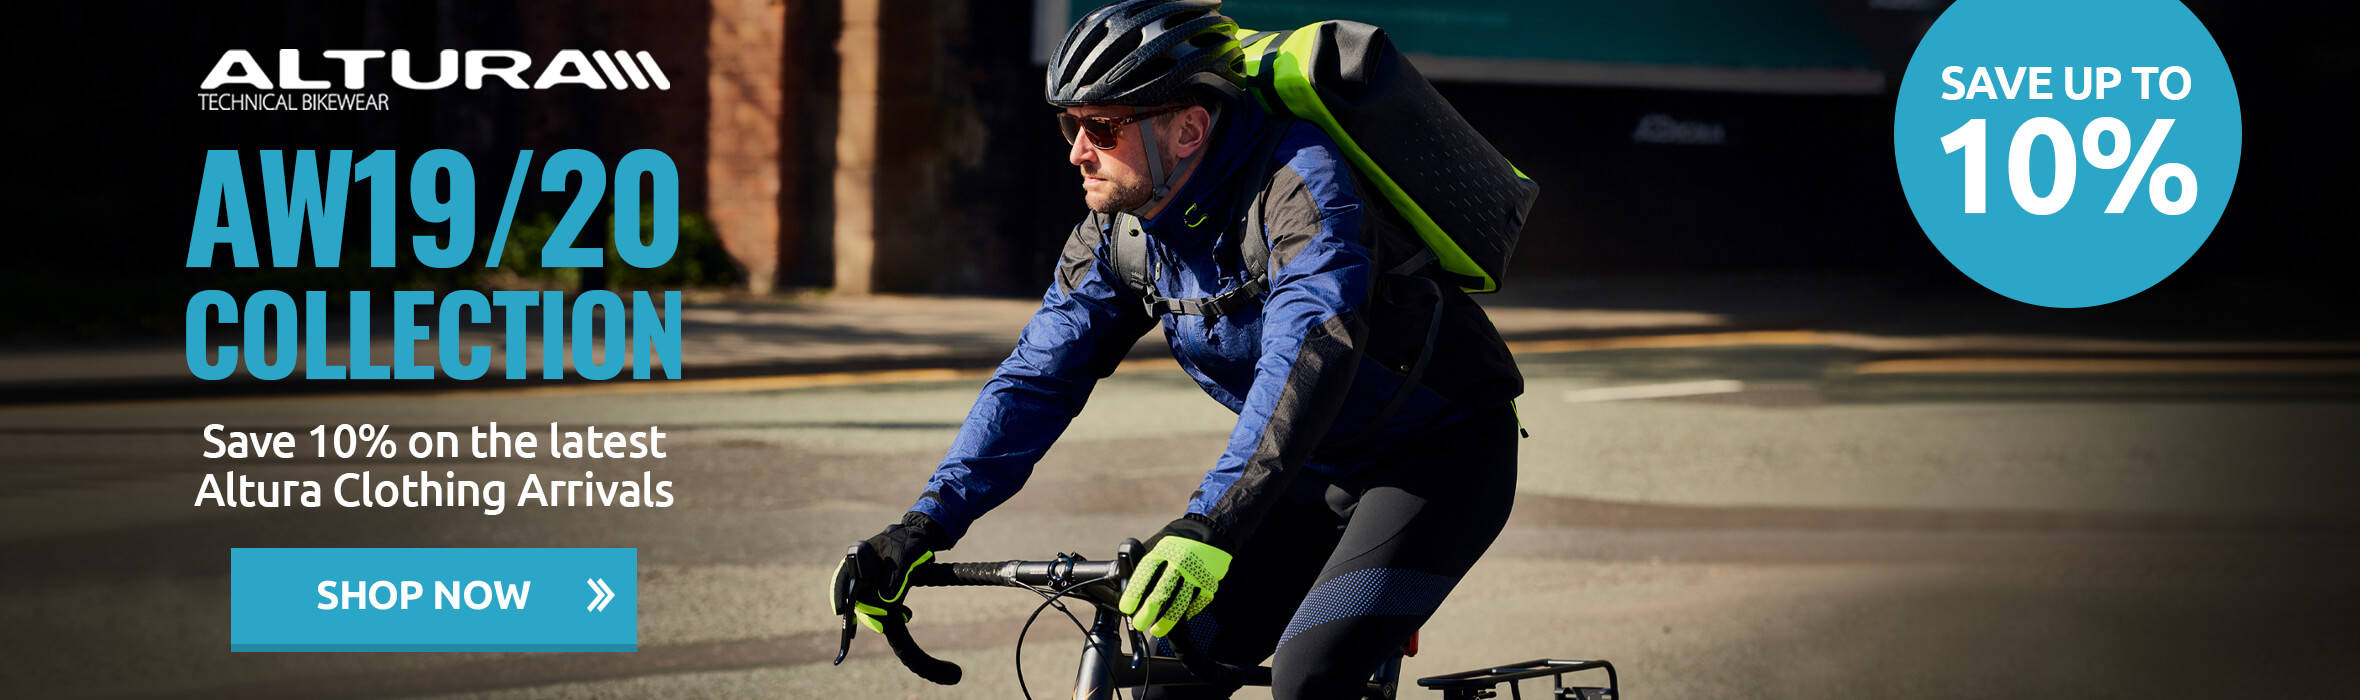 Save up to 10% on Altura AW19/20 Collection